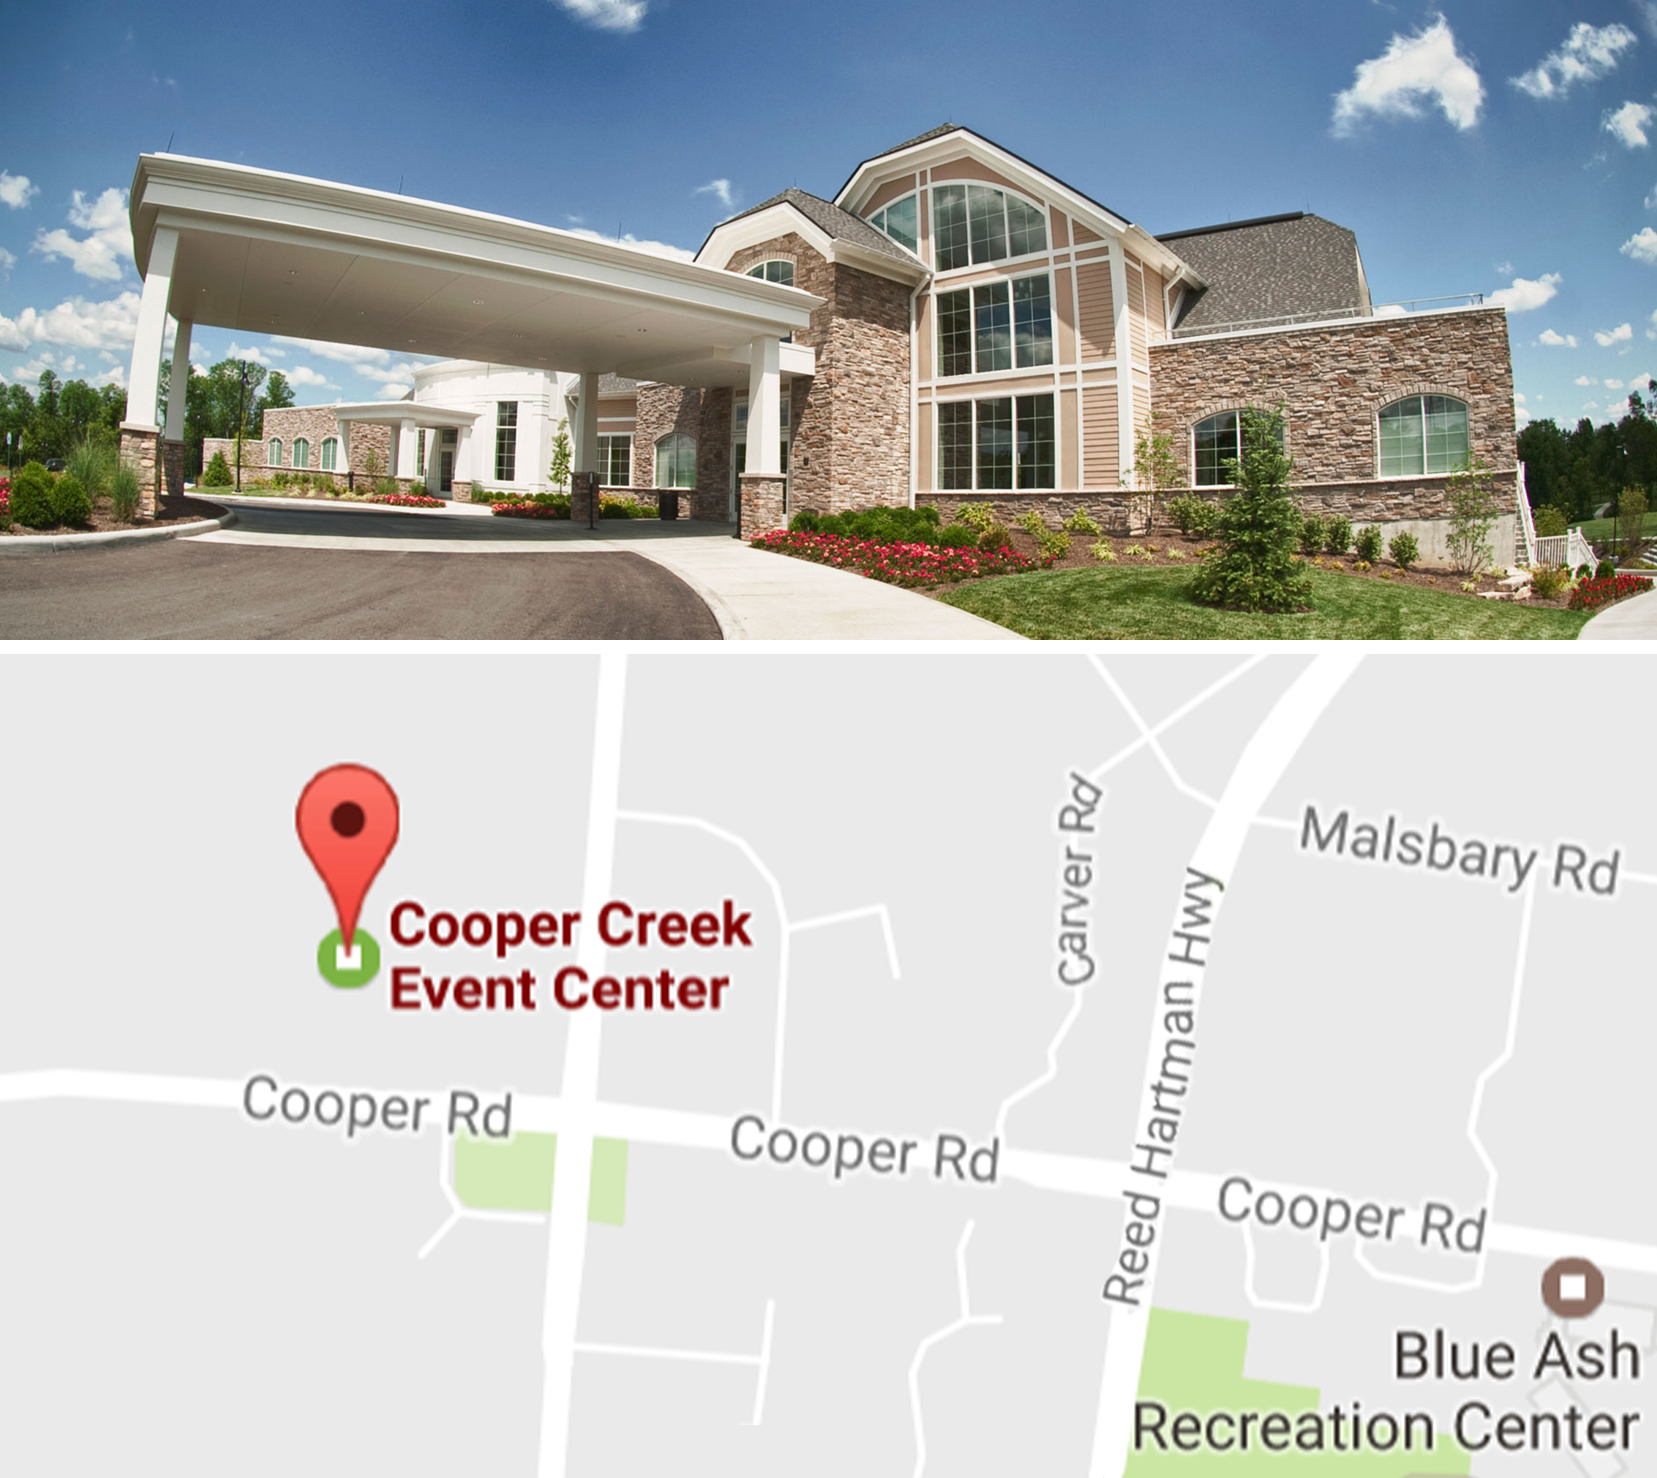 map-coopercreek-1.png